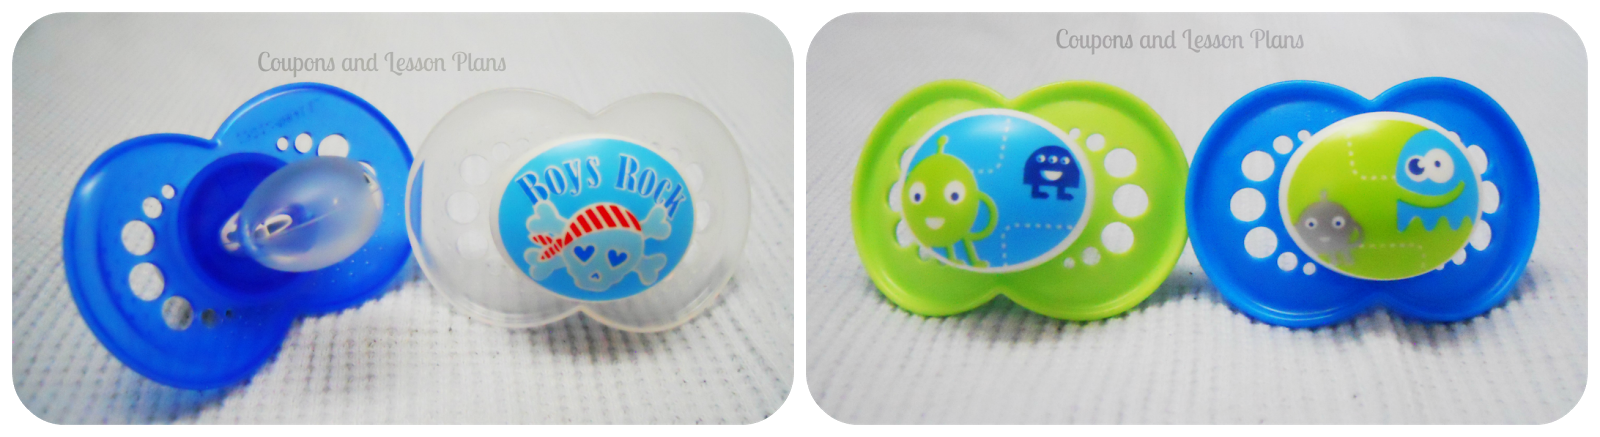 pictured are cute pacifier designs from MAM